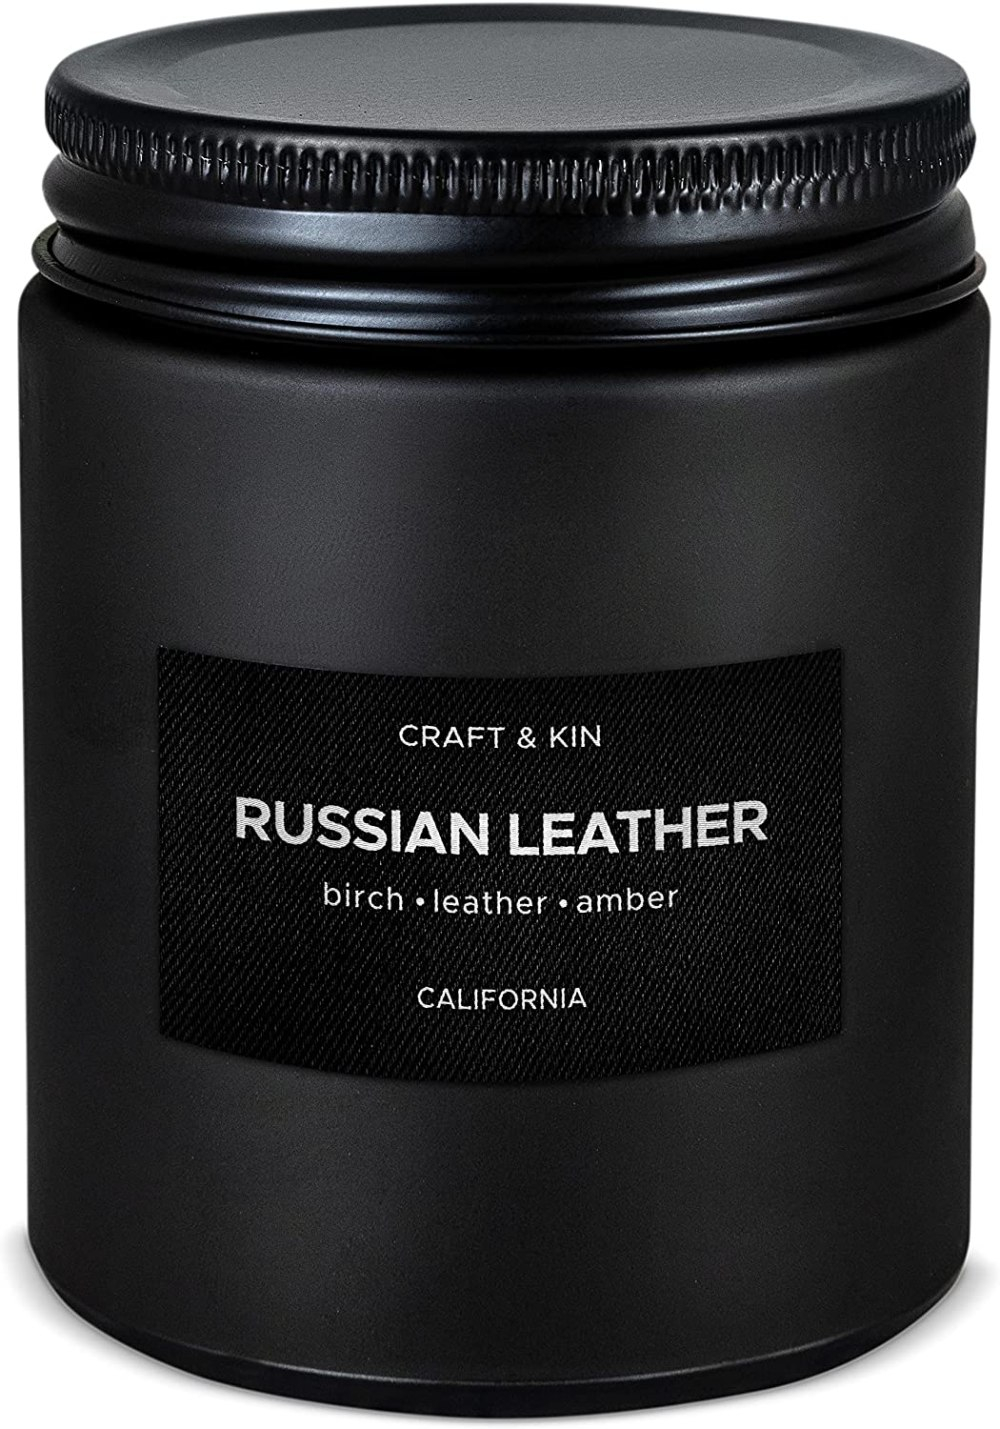 Russian Leather Scented Candle